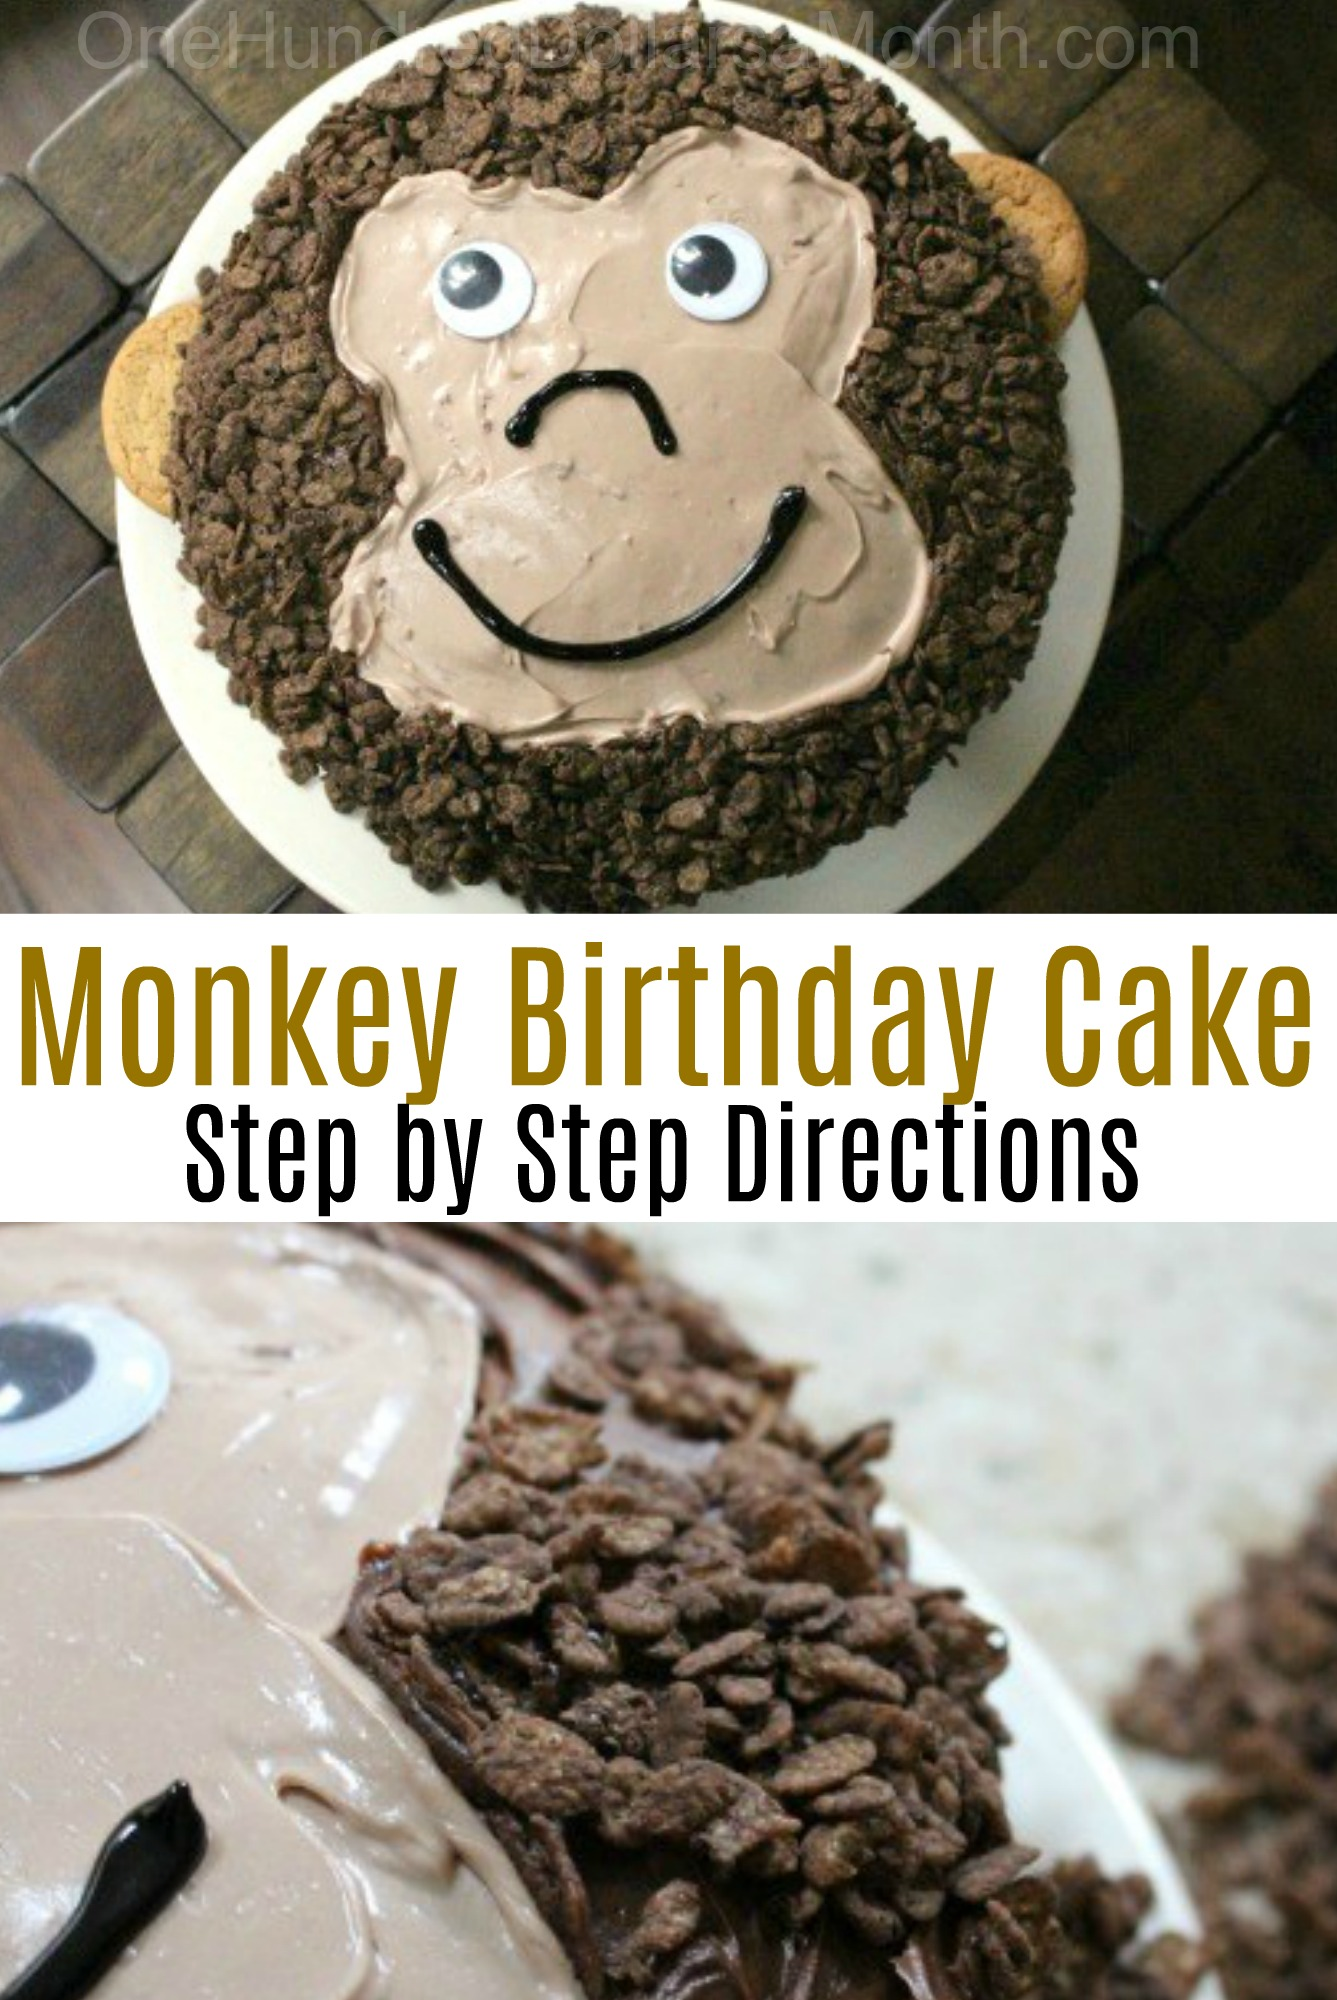 A Birthday Cake for Monkey Boy